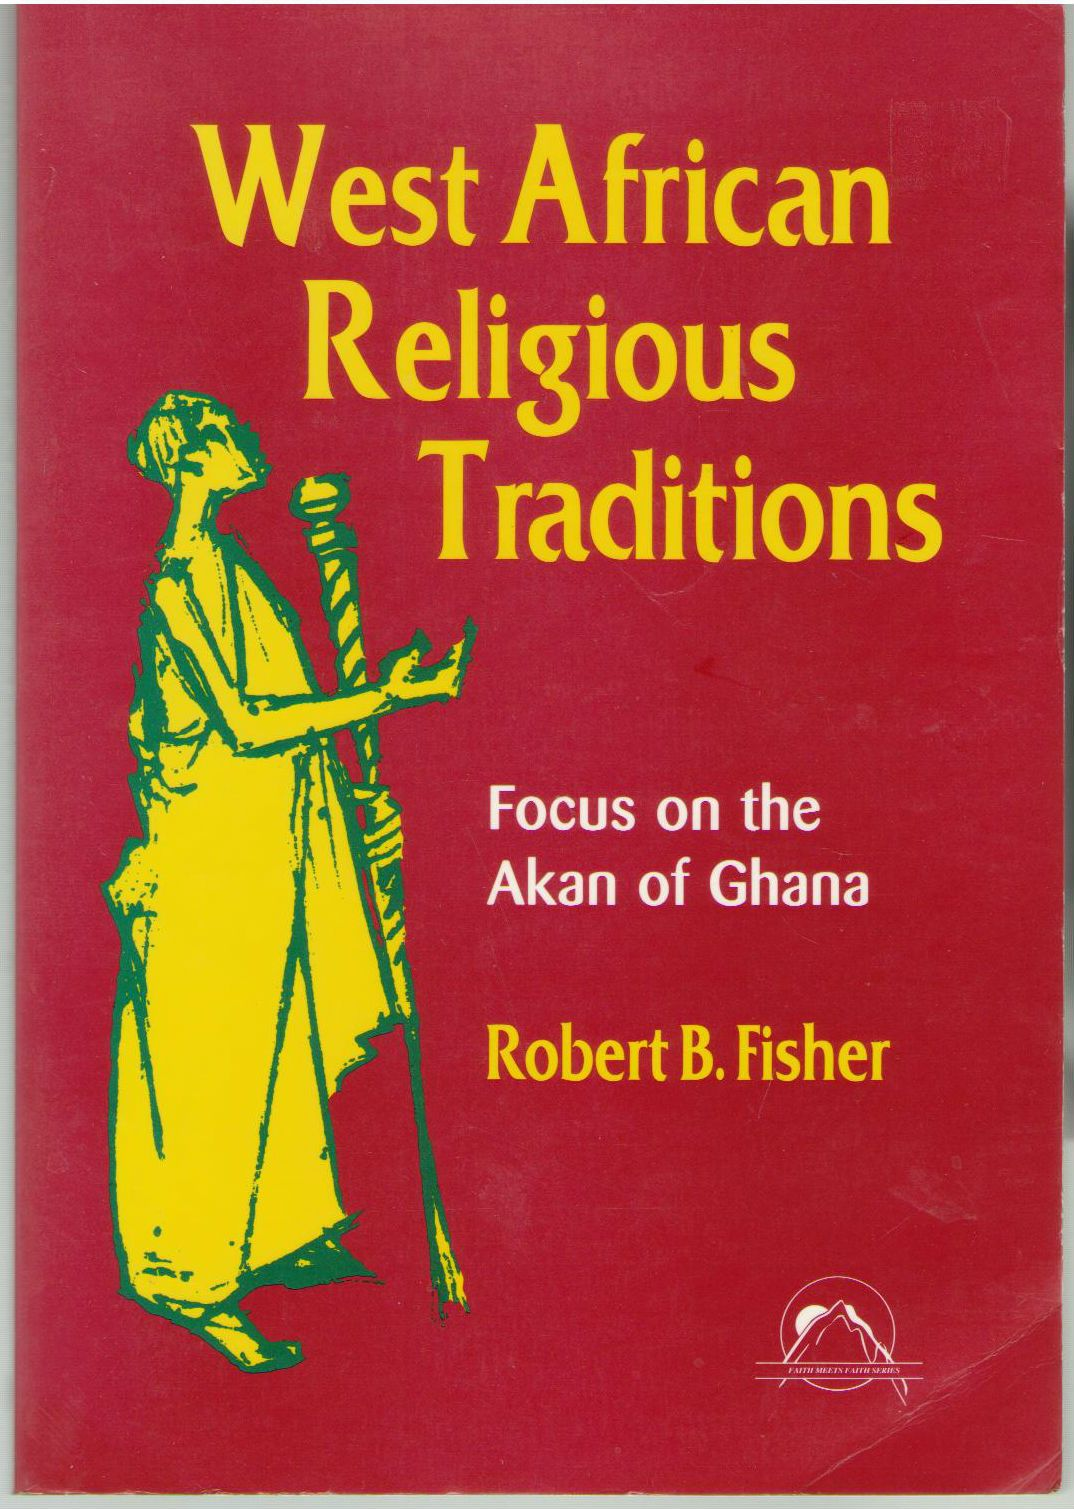 West African Religious Traditions: Focus on the Akan of Ghana (Faith Meets Faith), Fisher, Robert B.